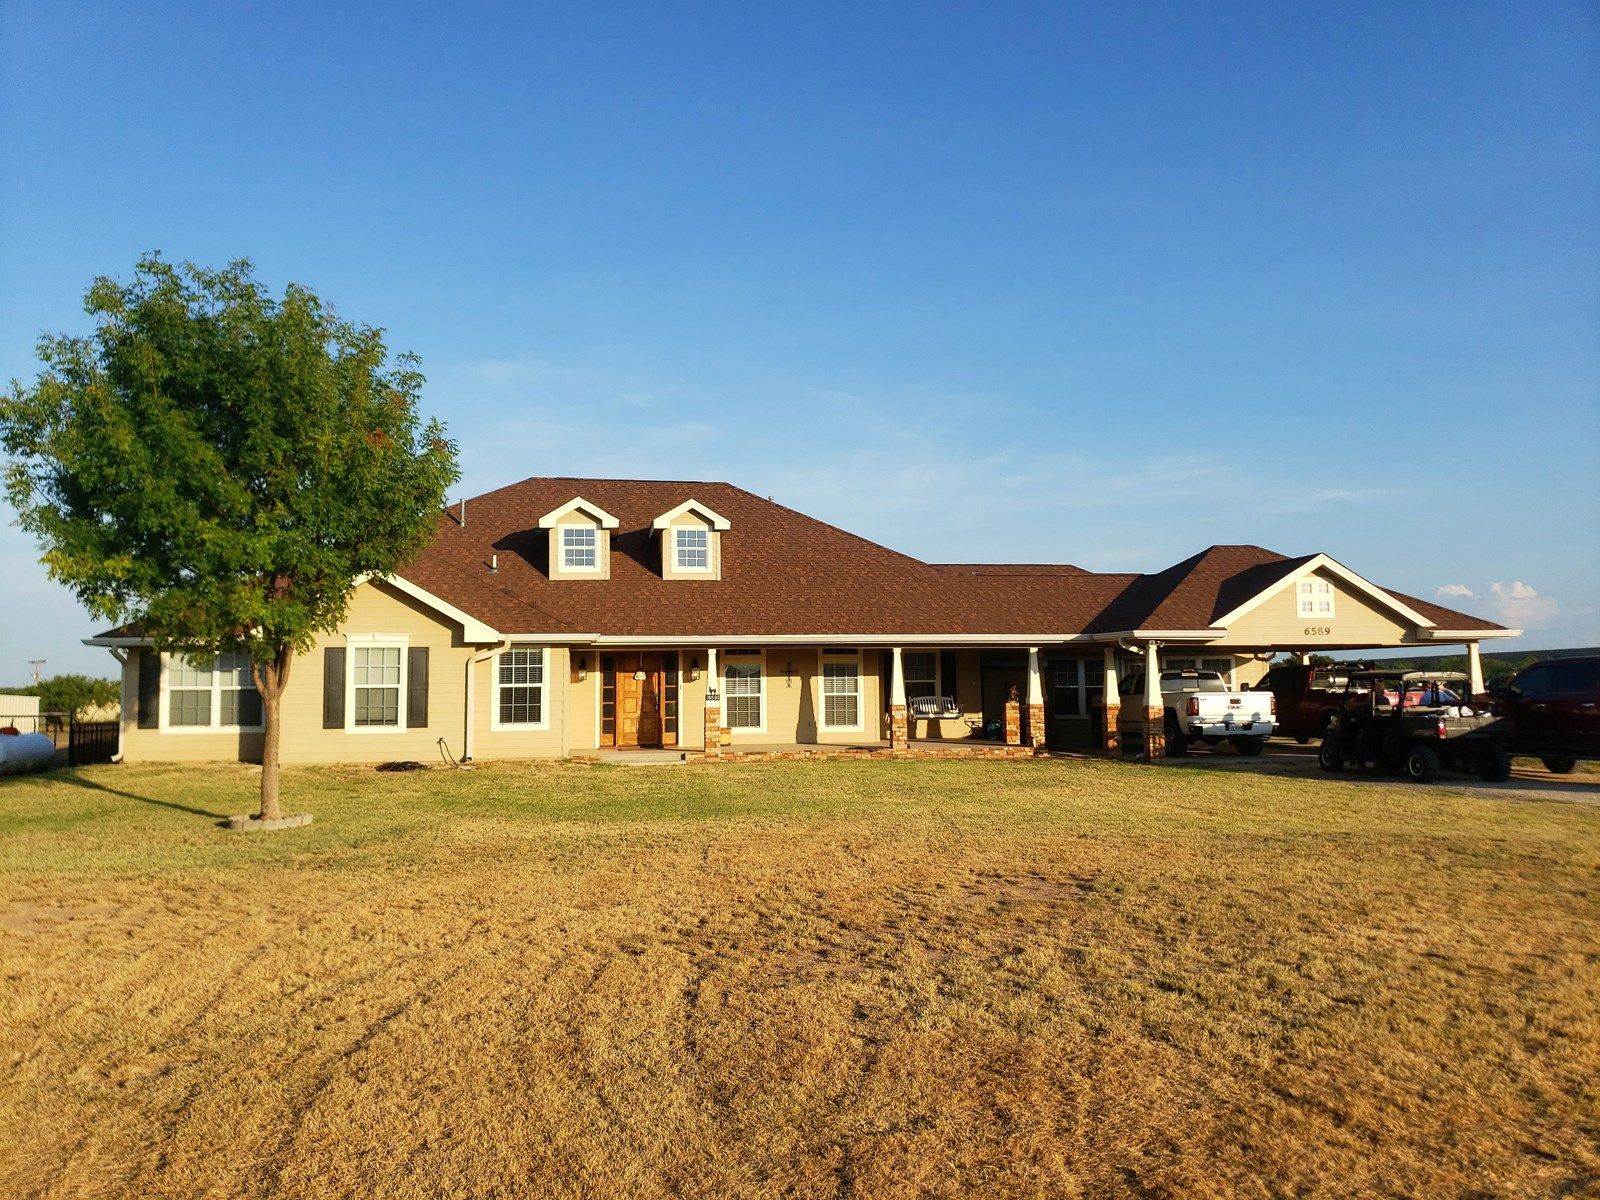 Country Home with land in San Angelo, Tx outside city limit